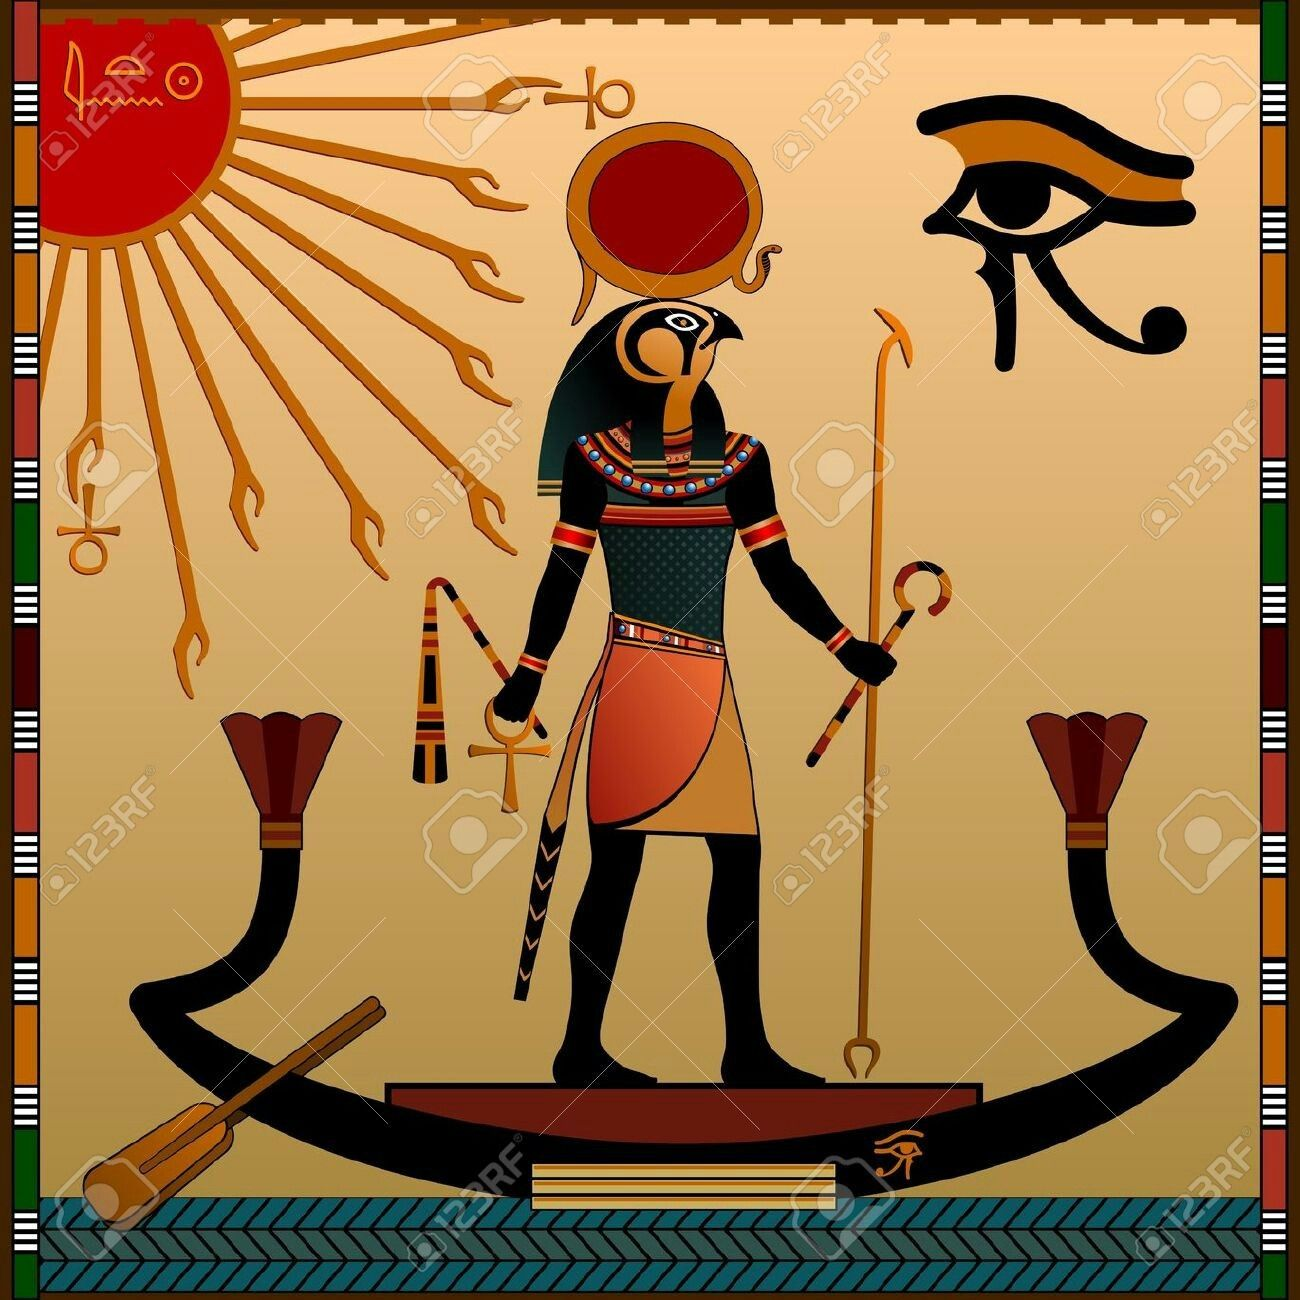 Pin by treza george on egypt pinterest egyptian ancient egypt religion of ancient egypt the gods of ancient egypt aten and ra ra in the solar bark buy this stock vector on shutterstock find other images biocorpaavc